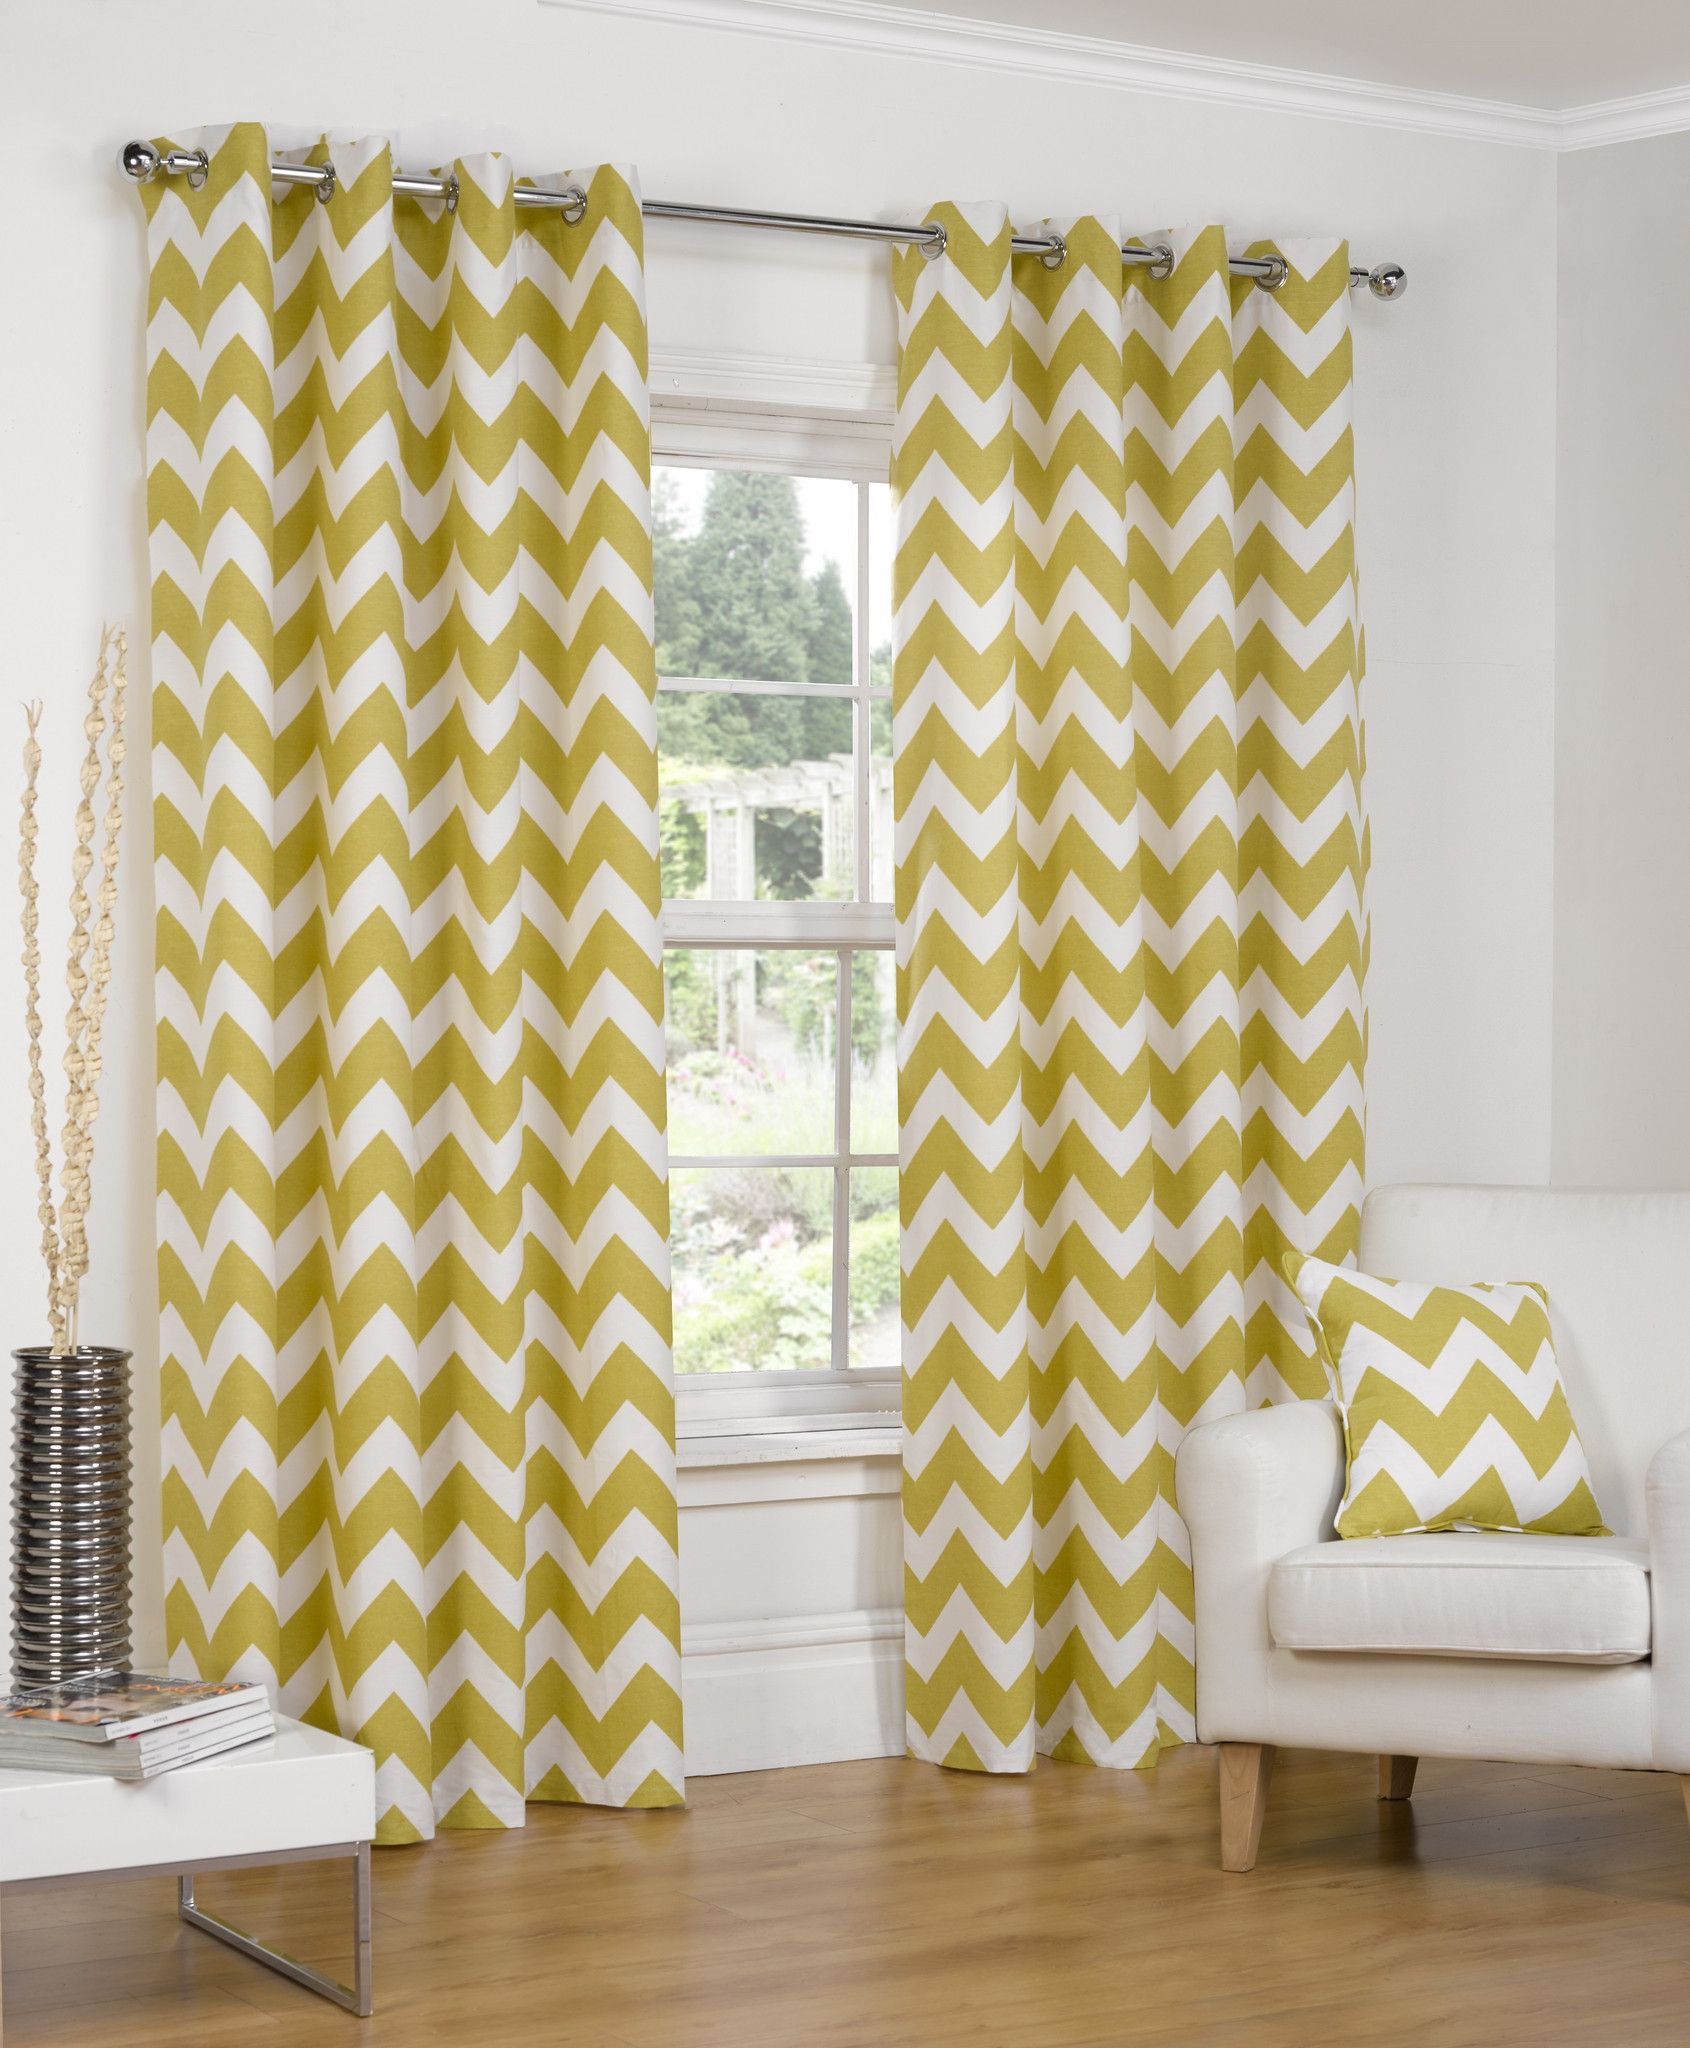 Chevron Ochre Ring Top Eyelet Lined Curtains 4 Your Home